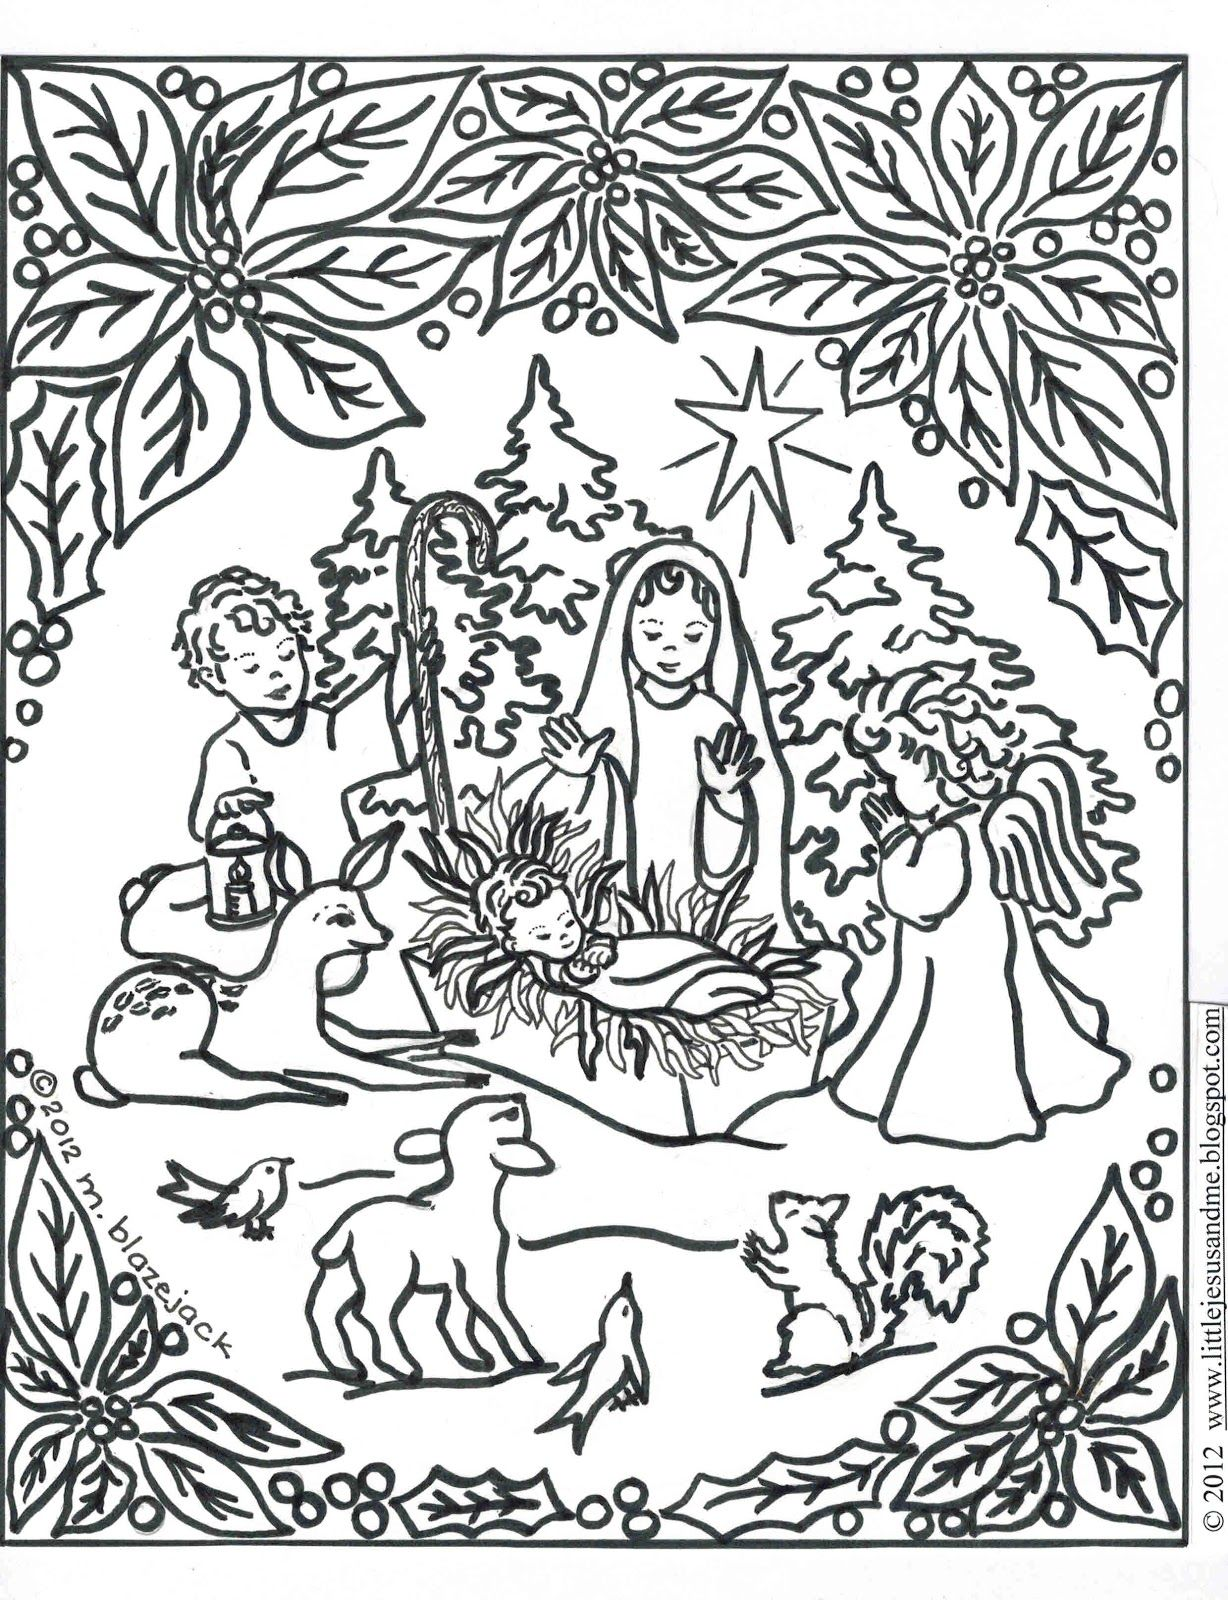 Woodland animal coloring page coloring home for Nativity animals coloring pages